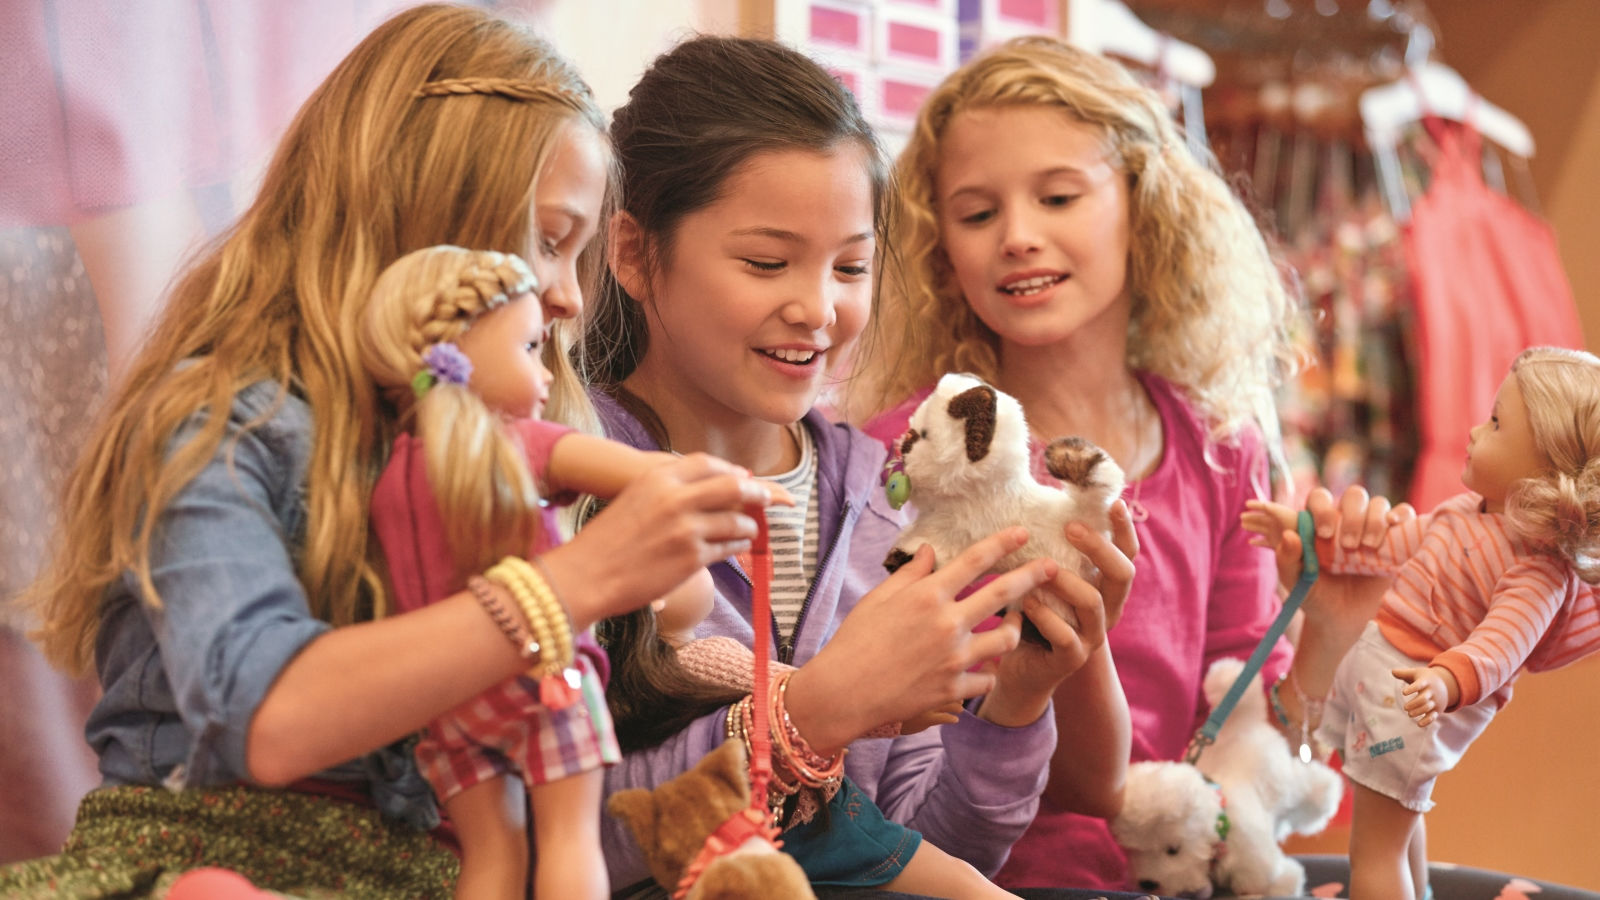 The Westin Galleria Dallas - American Girl Store Offers